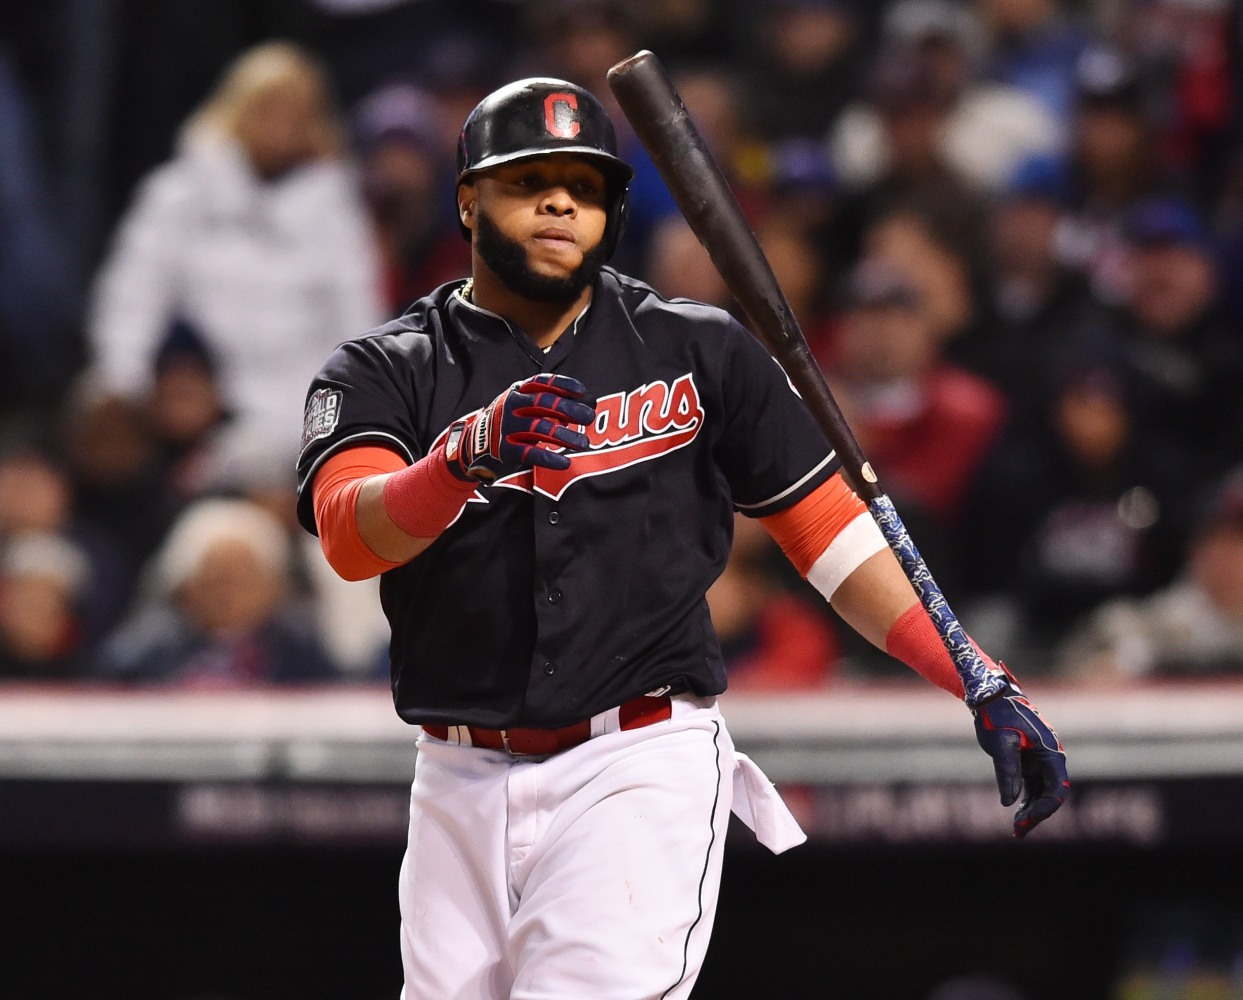 Cleveland Indians: 6 Latinos Making History In Cubs Vs. Indians World Series